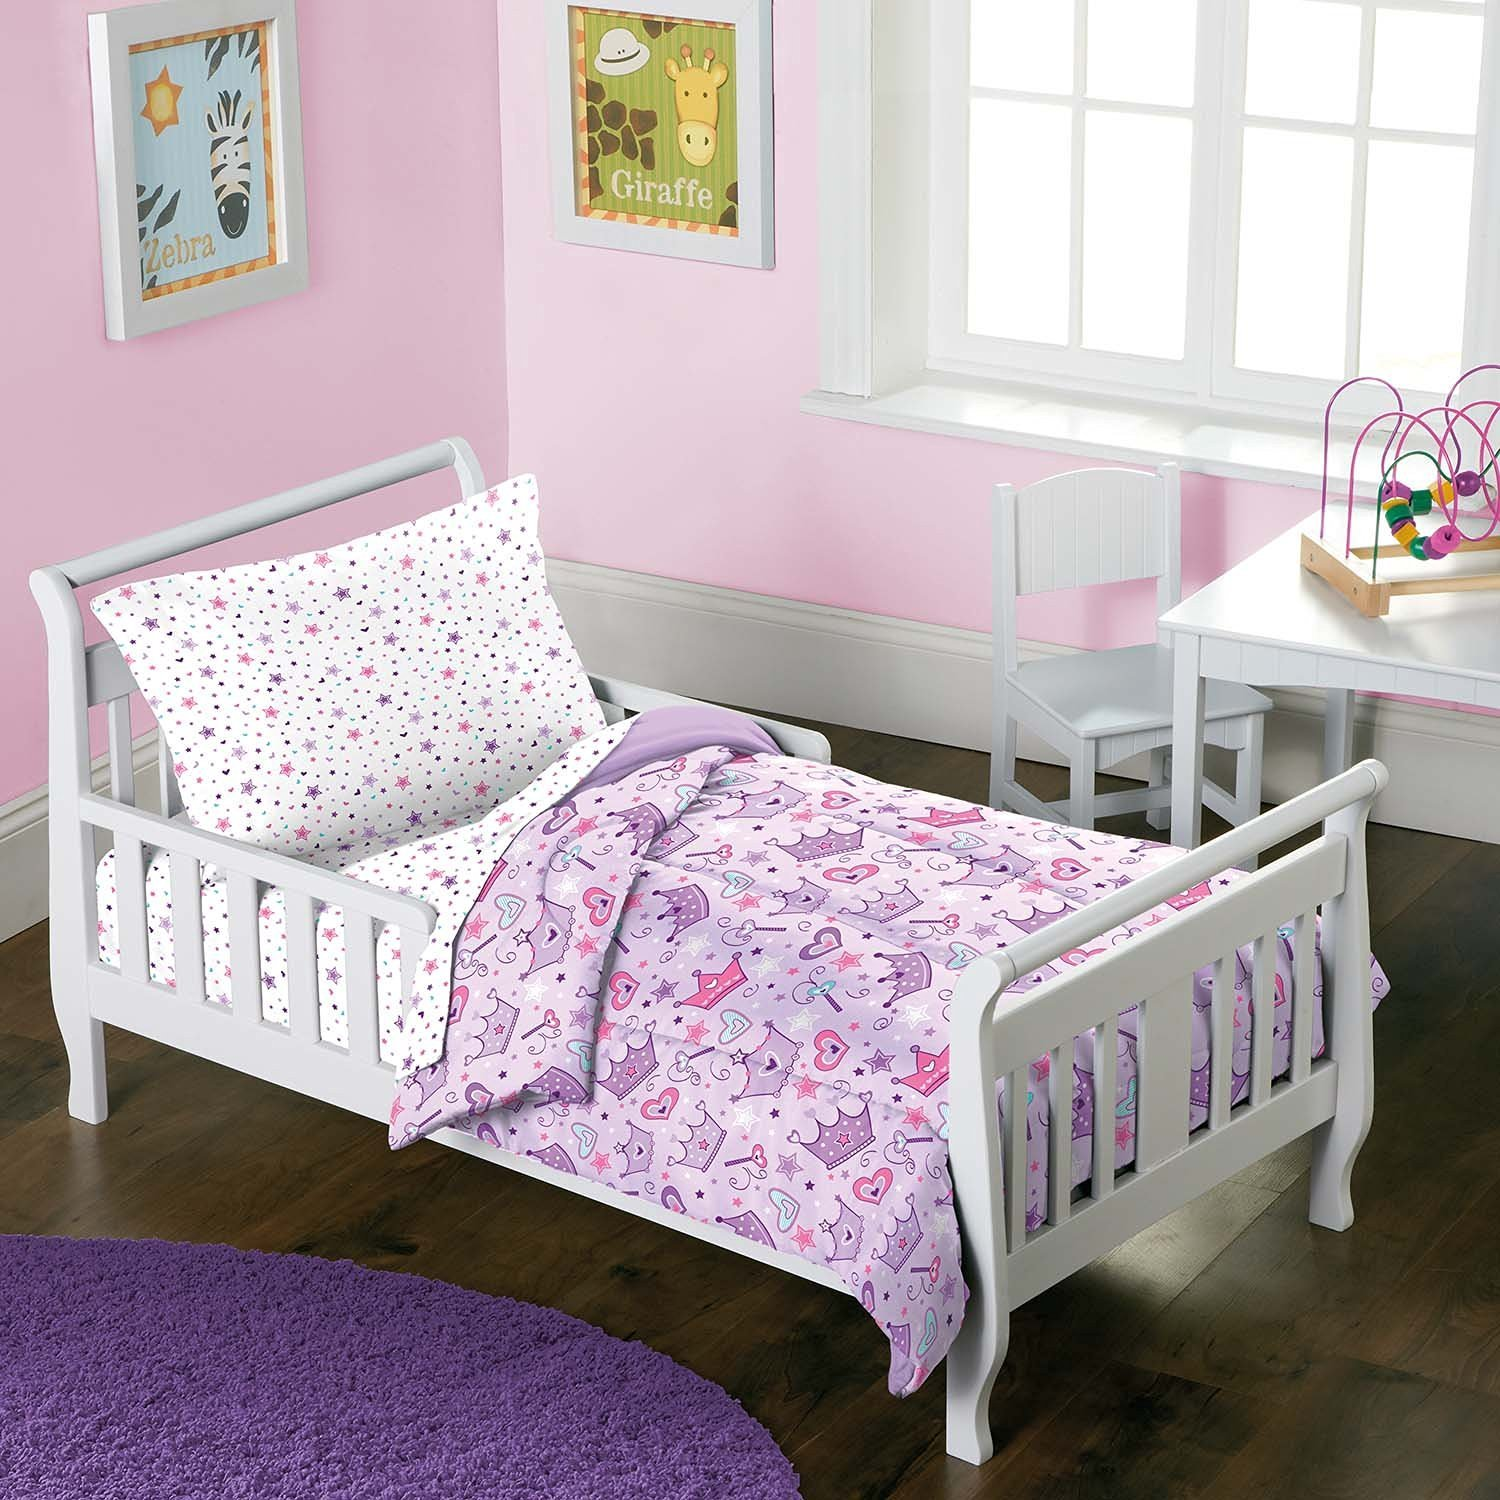 Dream Factory 2D74210JMU 4 Piece Stars & Crowns Bedding Set, Multicolor, Toddler